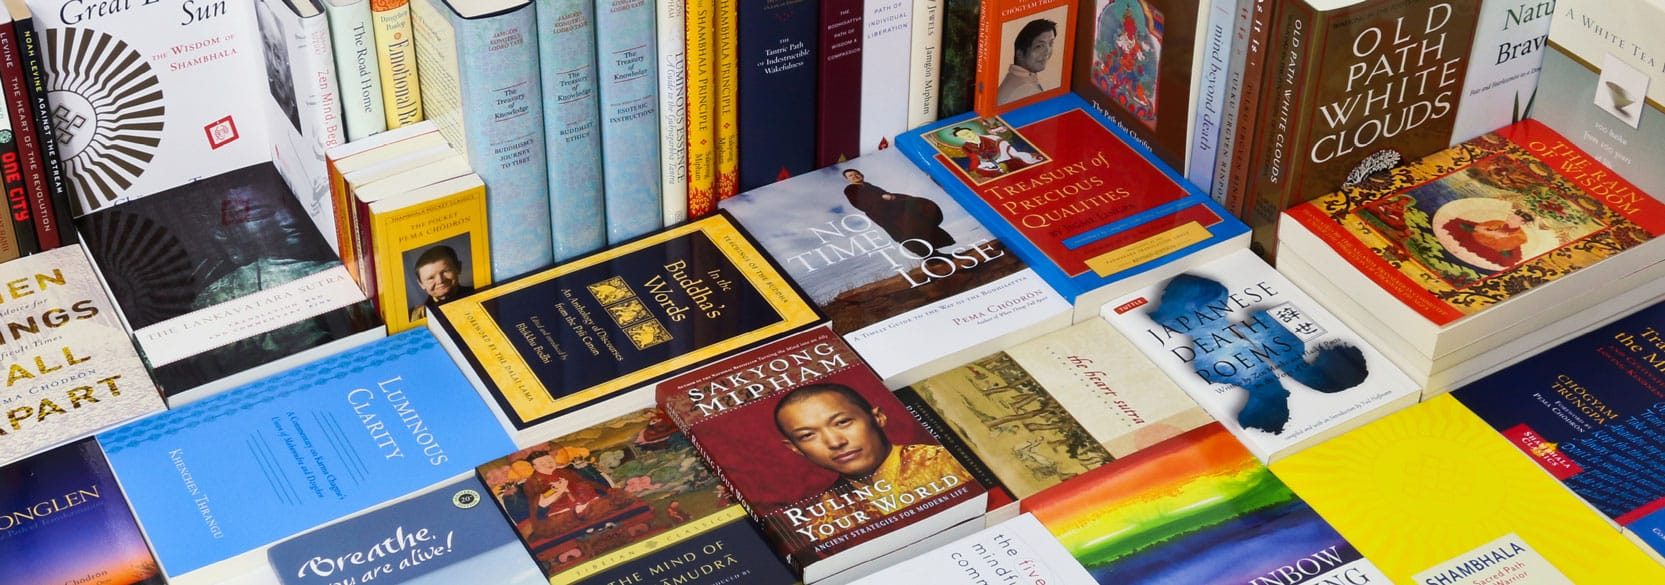 Buddhist Books and Media on Buddhist Meditation, Meditation Courses on How to Meditate, New Releases. Over 1500 titles, CD's and DVD's in stock. All titles discounted. Prompt shipping. We aren't Amazon, but we know our titles. Call or write with questions.